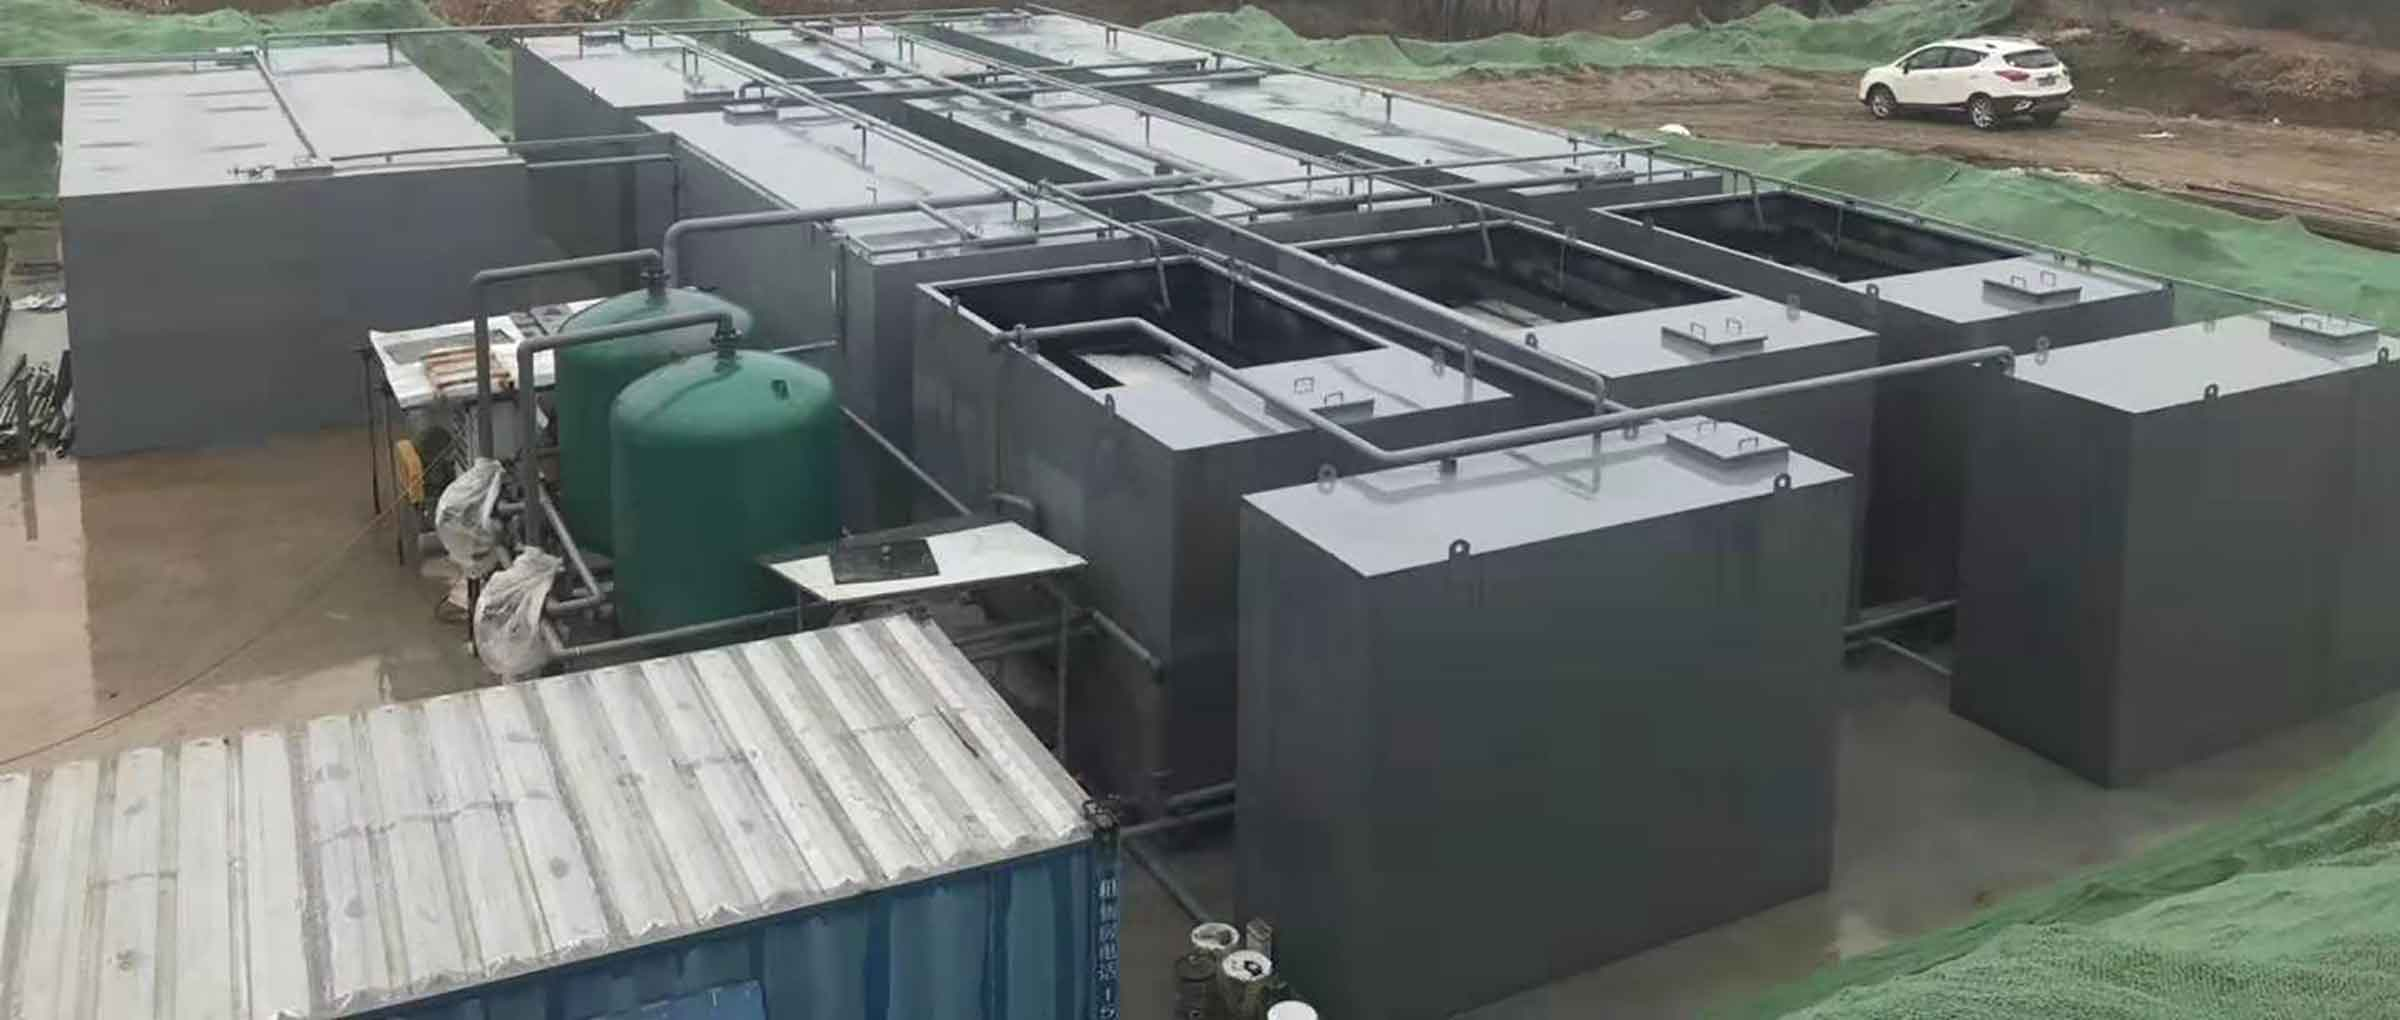 Waste Water Treatment System banner